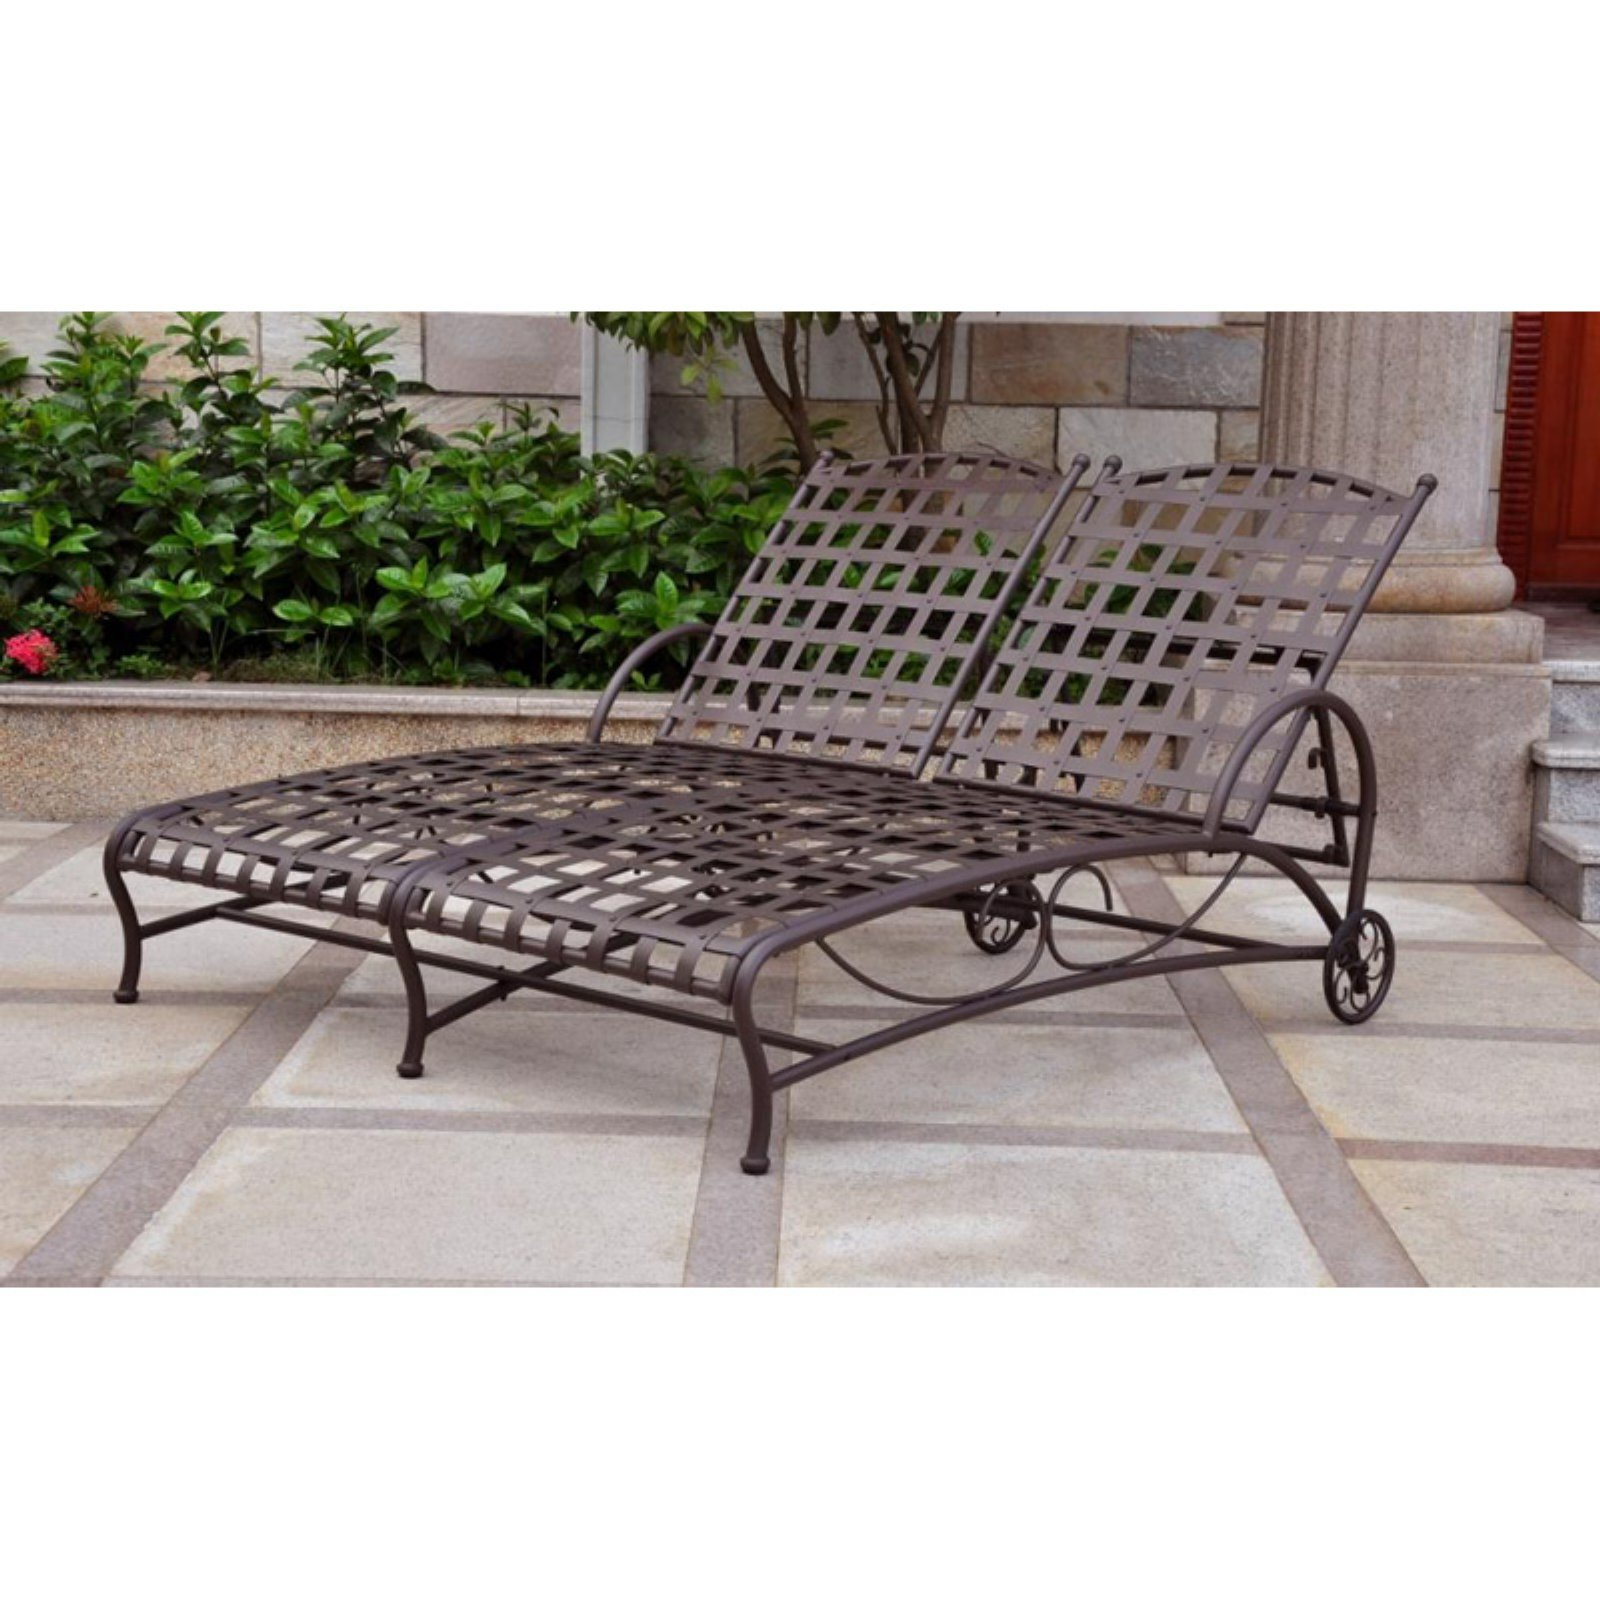 2020 Resin Wicker Multi Position Double Patio Chaise Lounges Intended For Outdoor International Caravan Santa Fe Iron Metal Double (View 5 of 25)